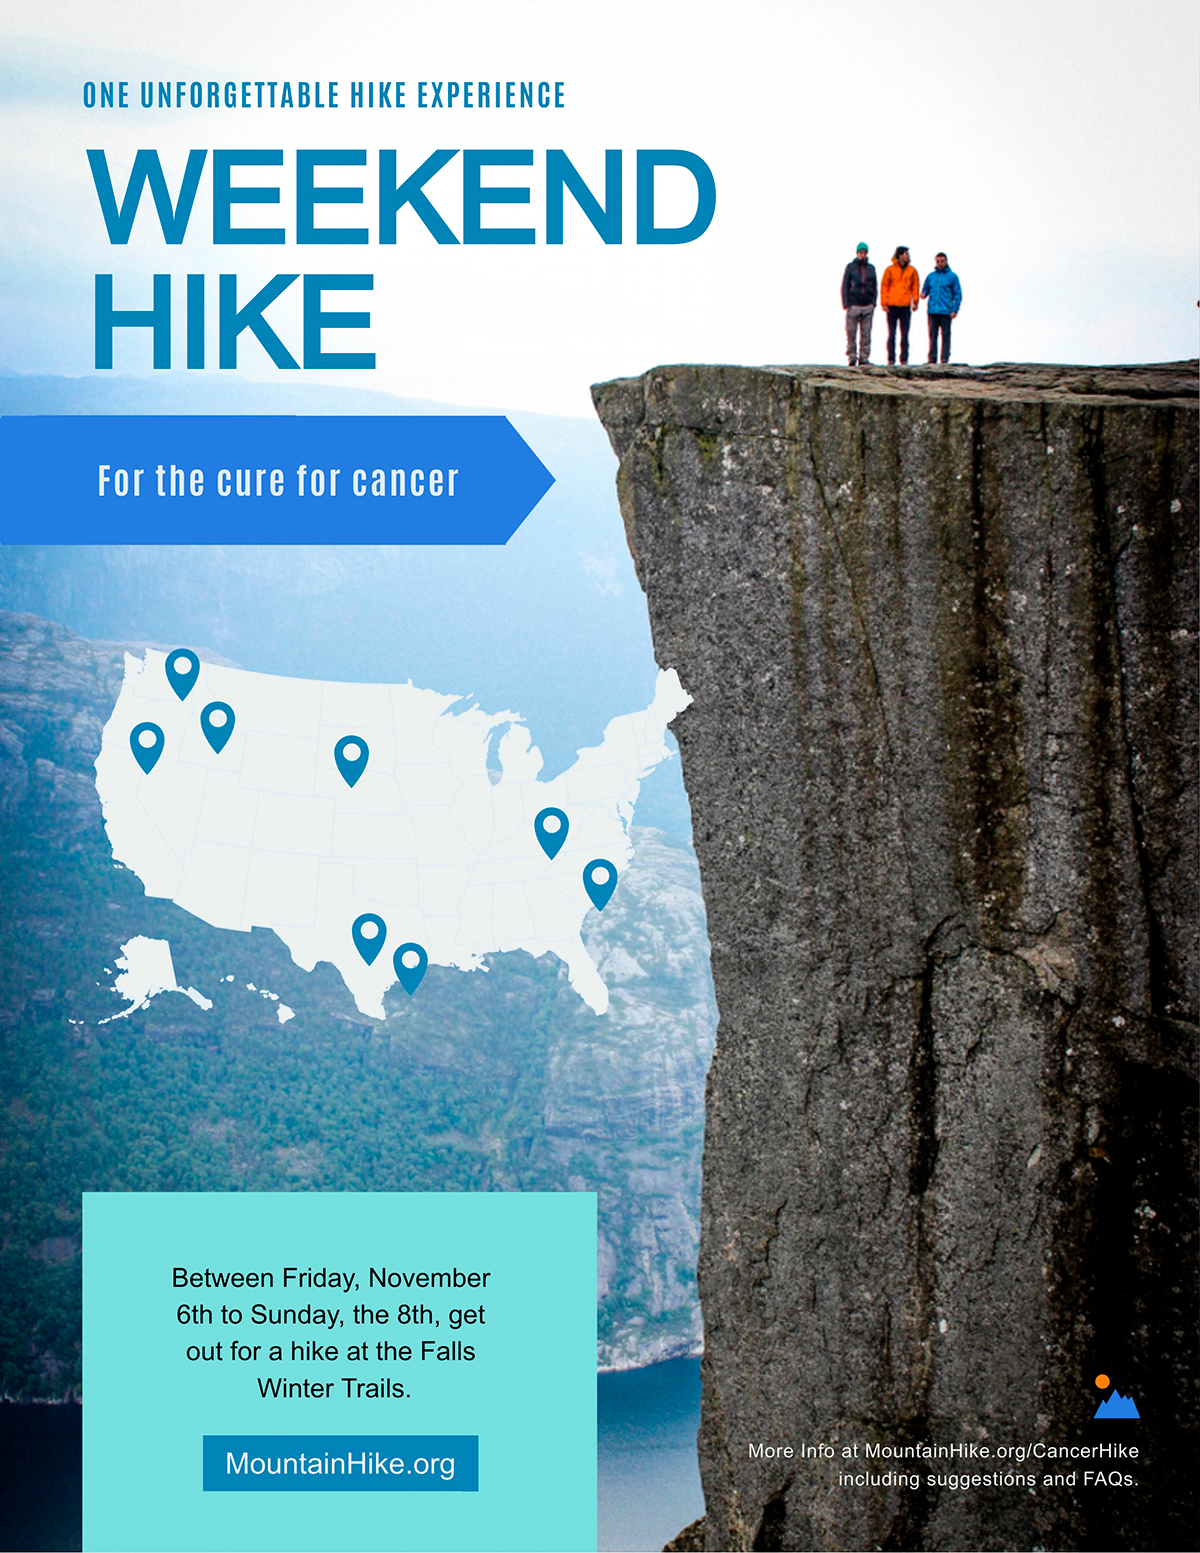 Hiking flyer template available in Visme.